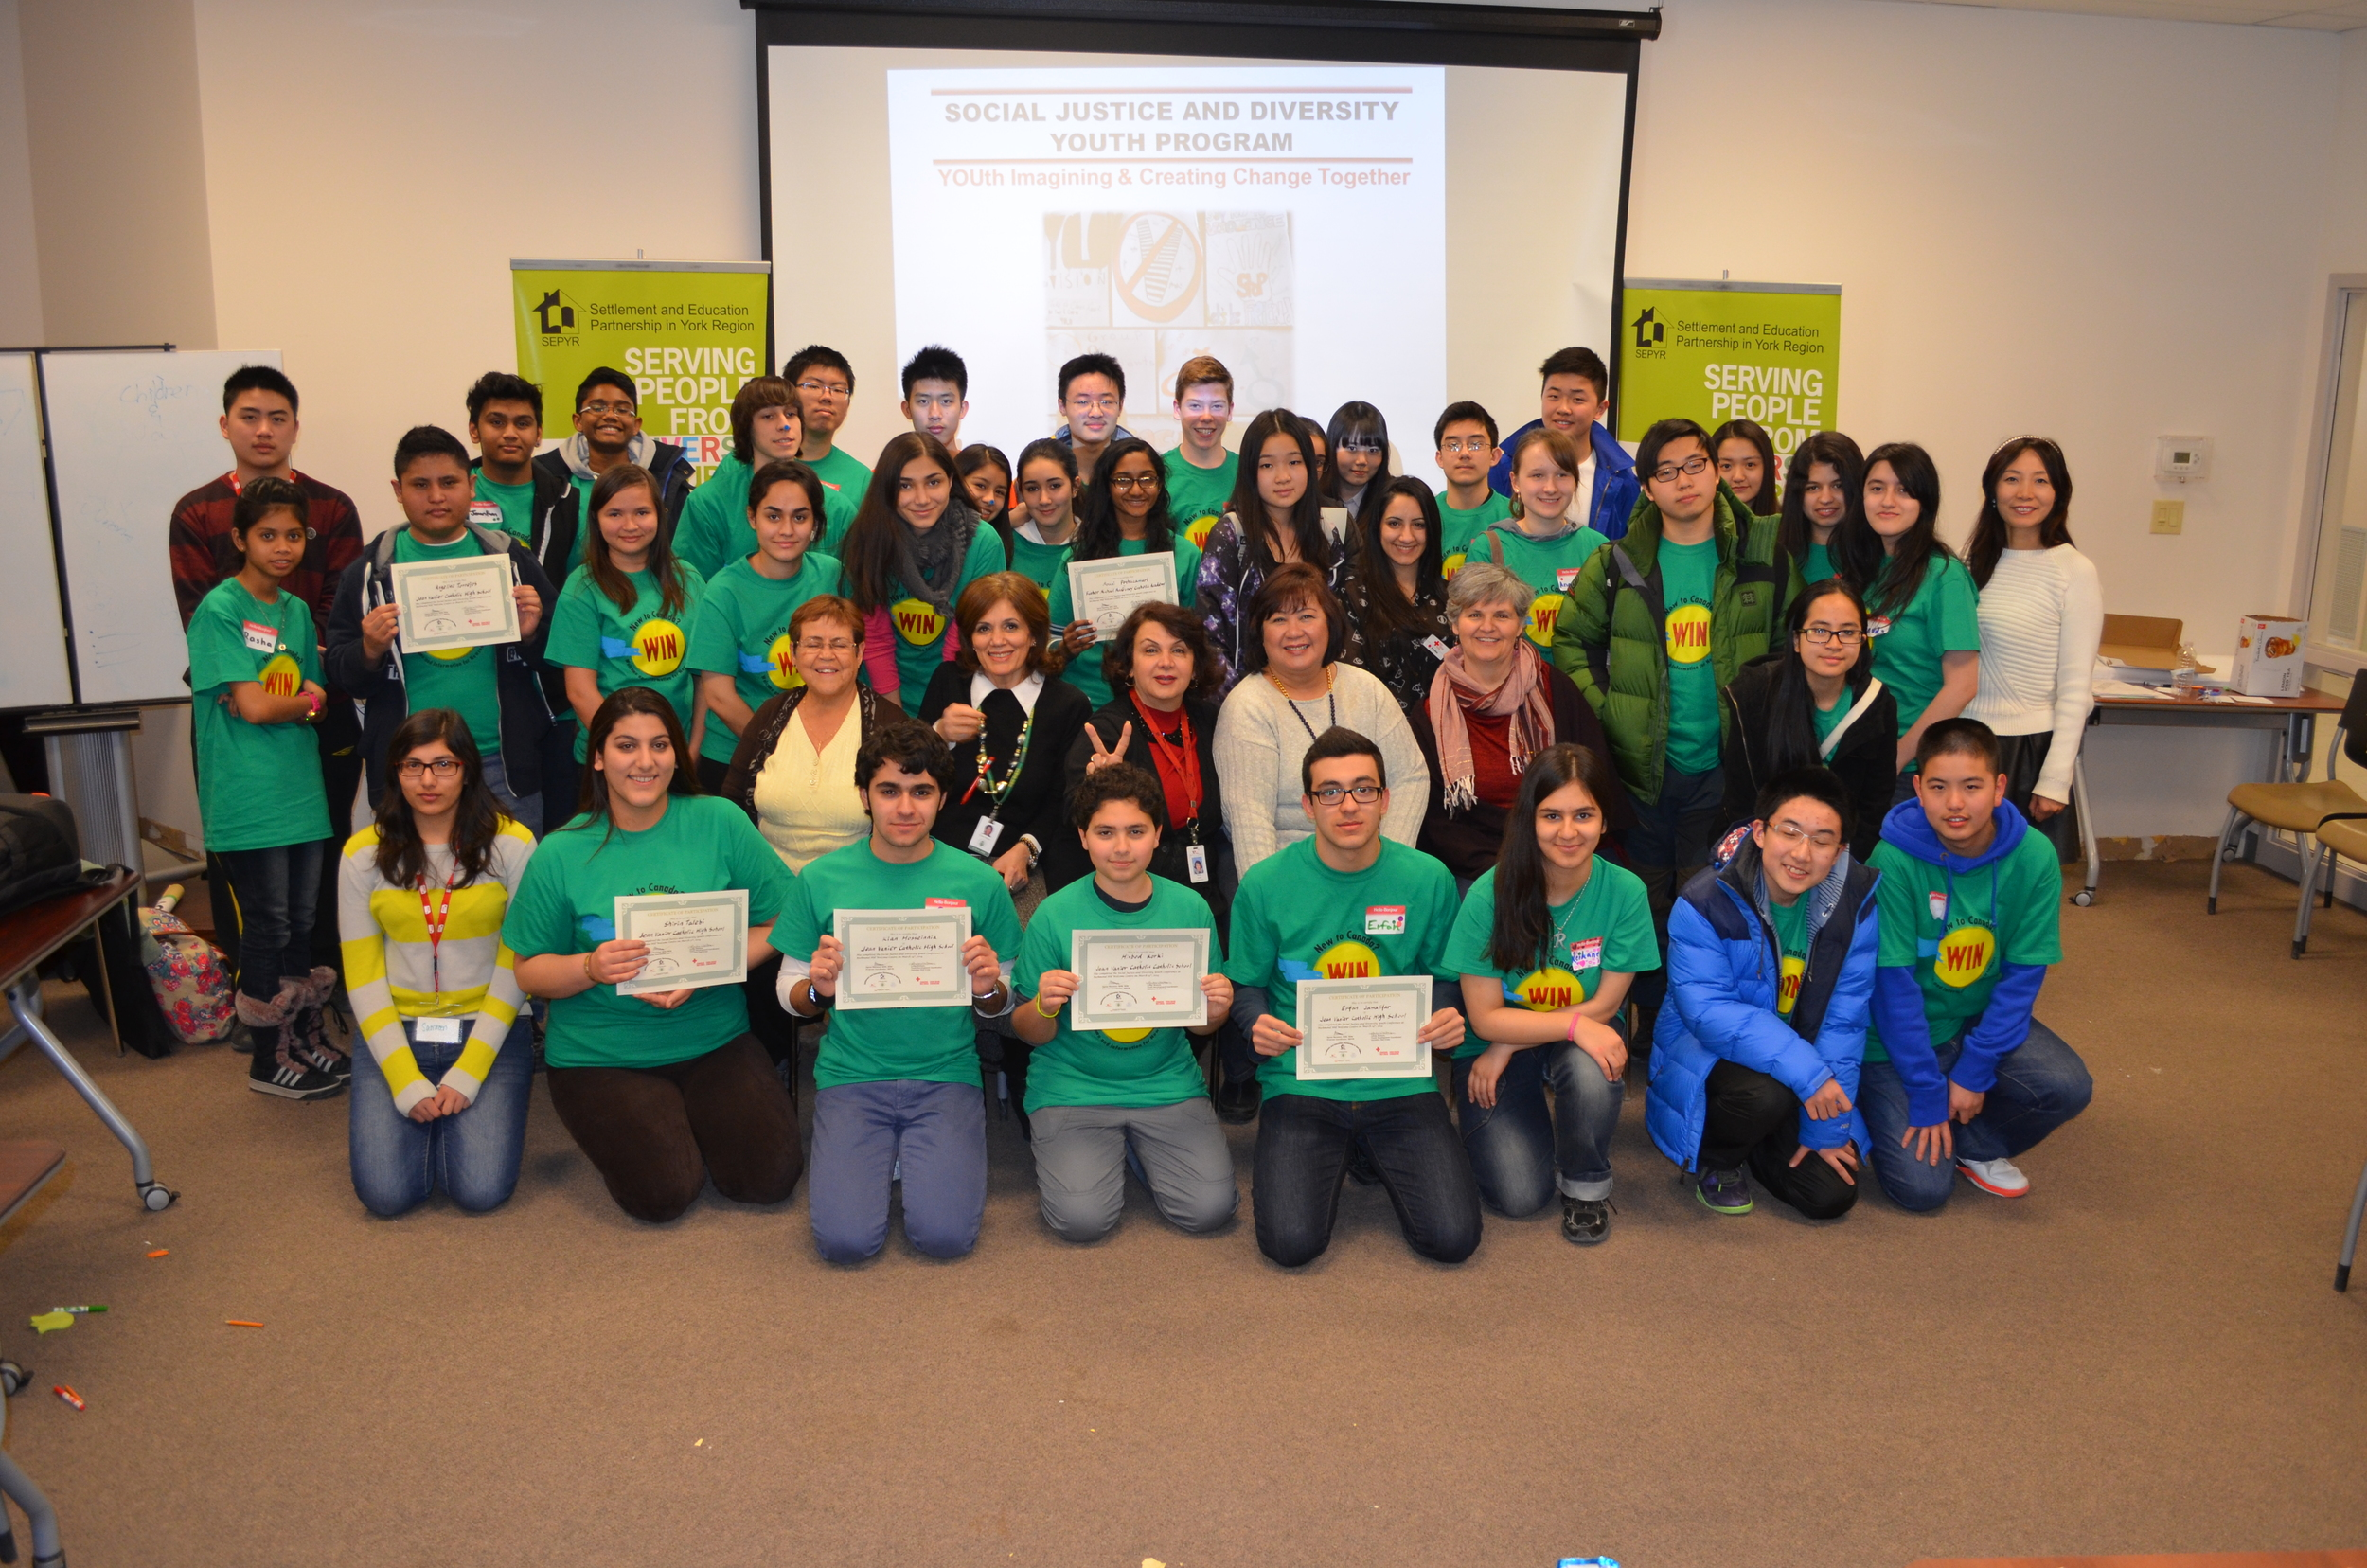 The Youth Conference on Social Justice and Diversity, 2014. Image by CCSYR.